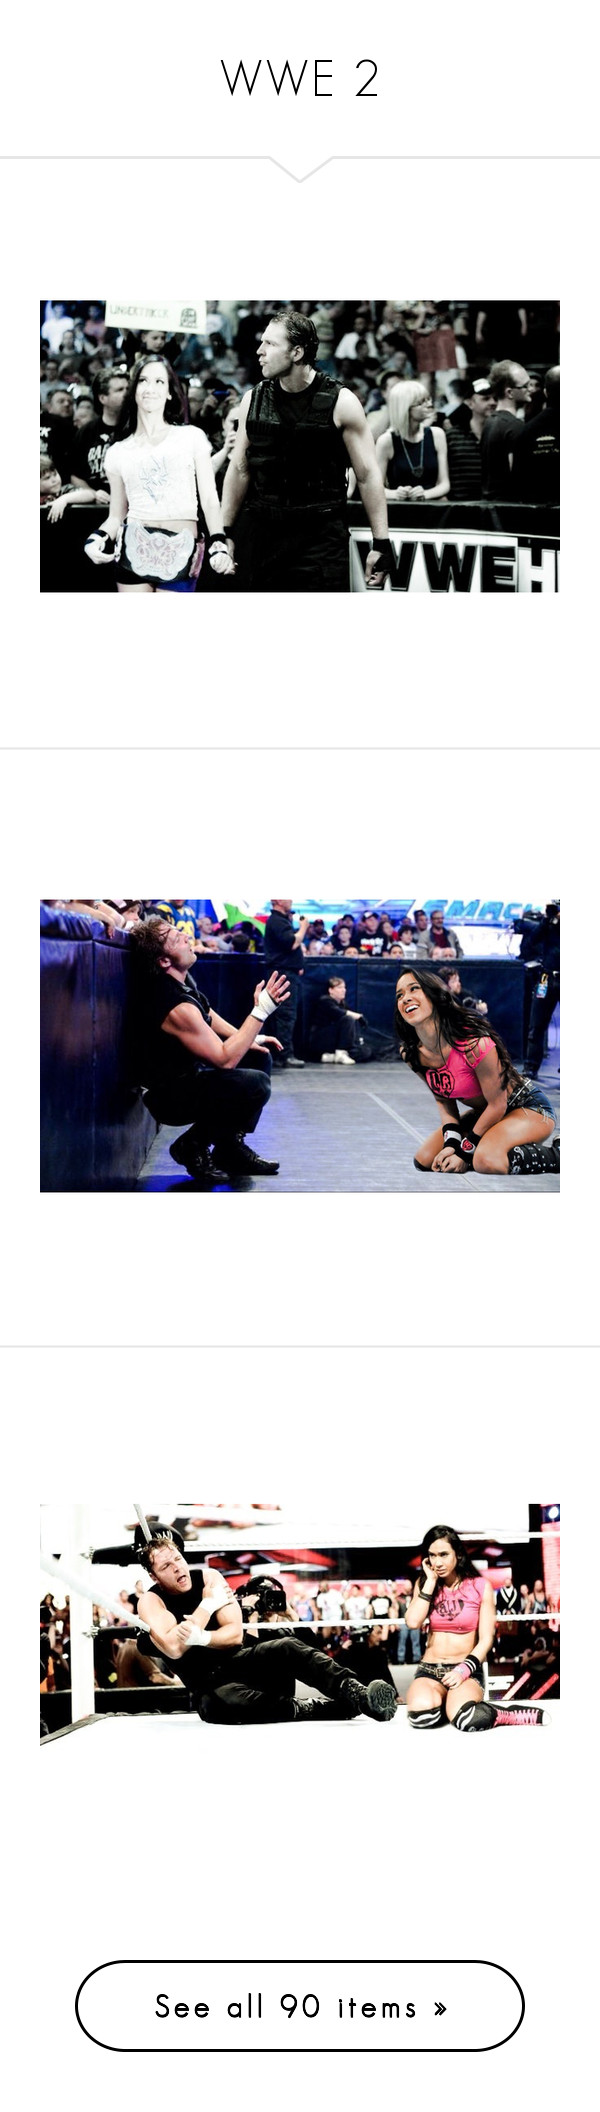 """""""WWE 2"""" by jamiehemmings19 ❤ liked on Polyvore featuring home, home decor, wwe, gas jeans, manip, manips, paige, tops and shirt top"""